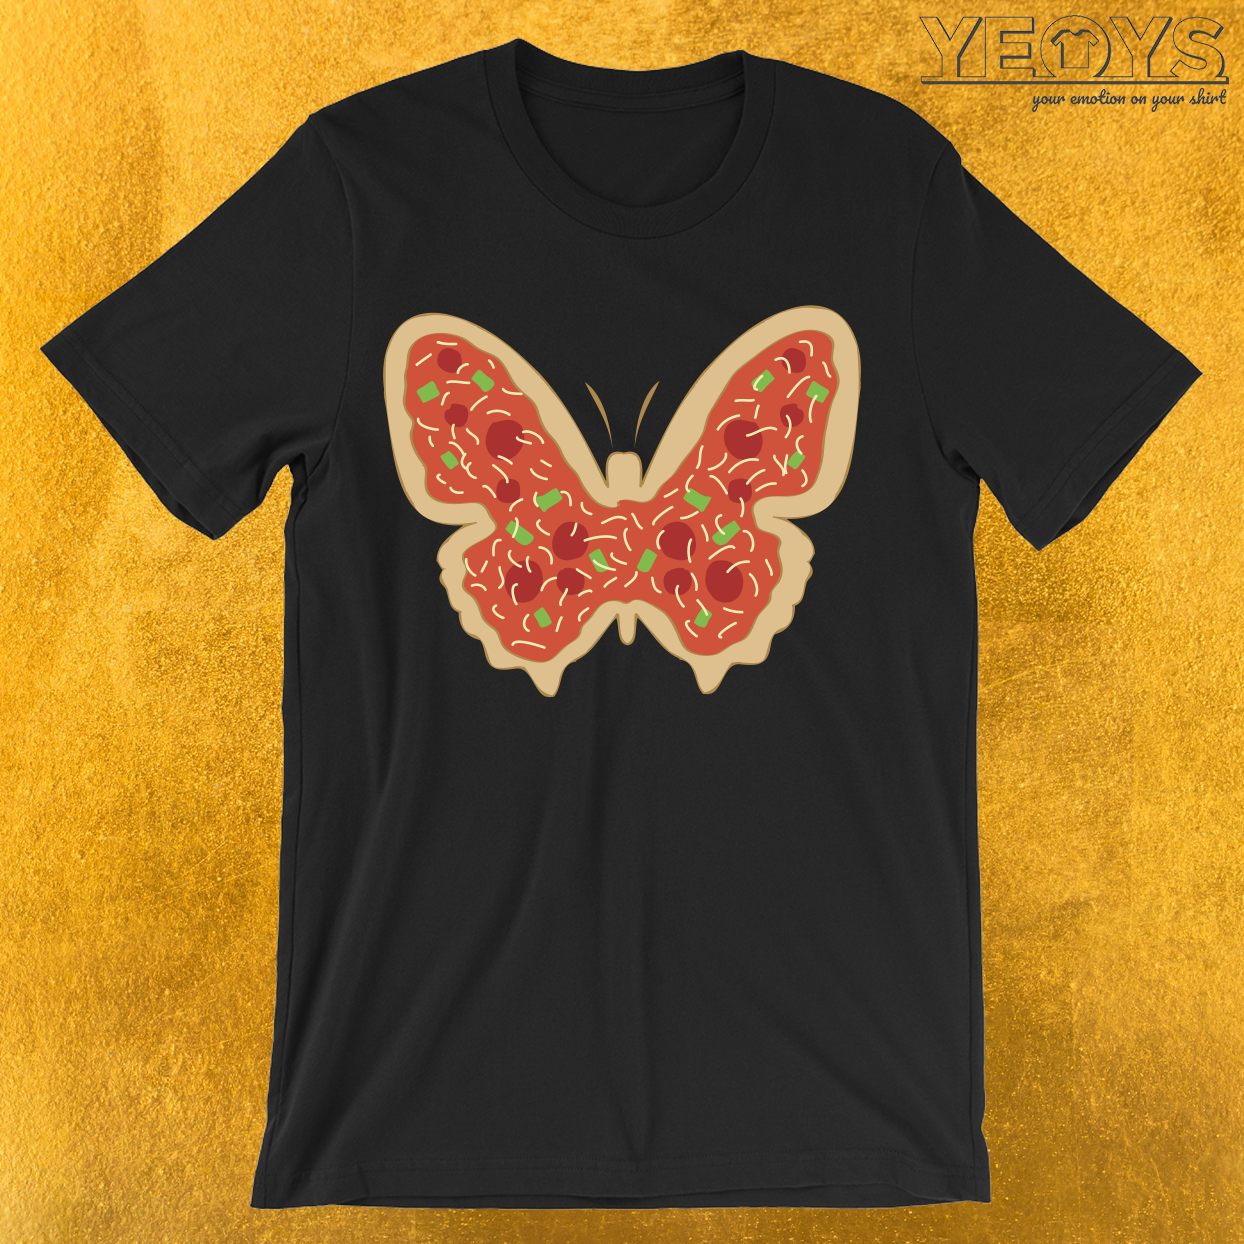 Pizzatterfly Pizza Butterfly T-Shirt